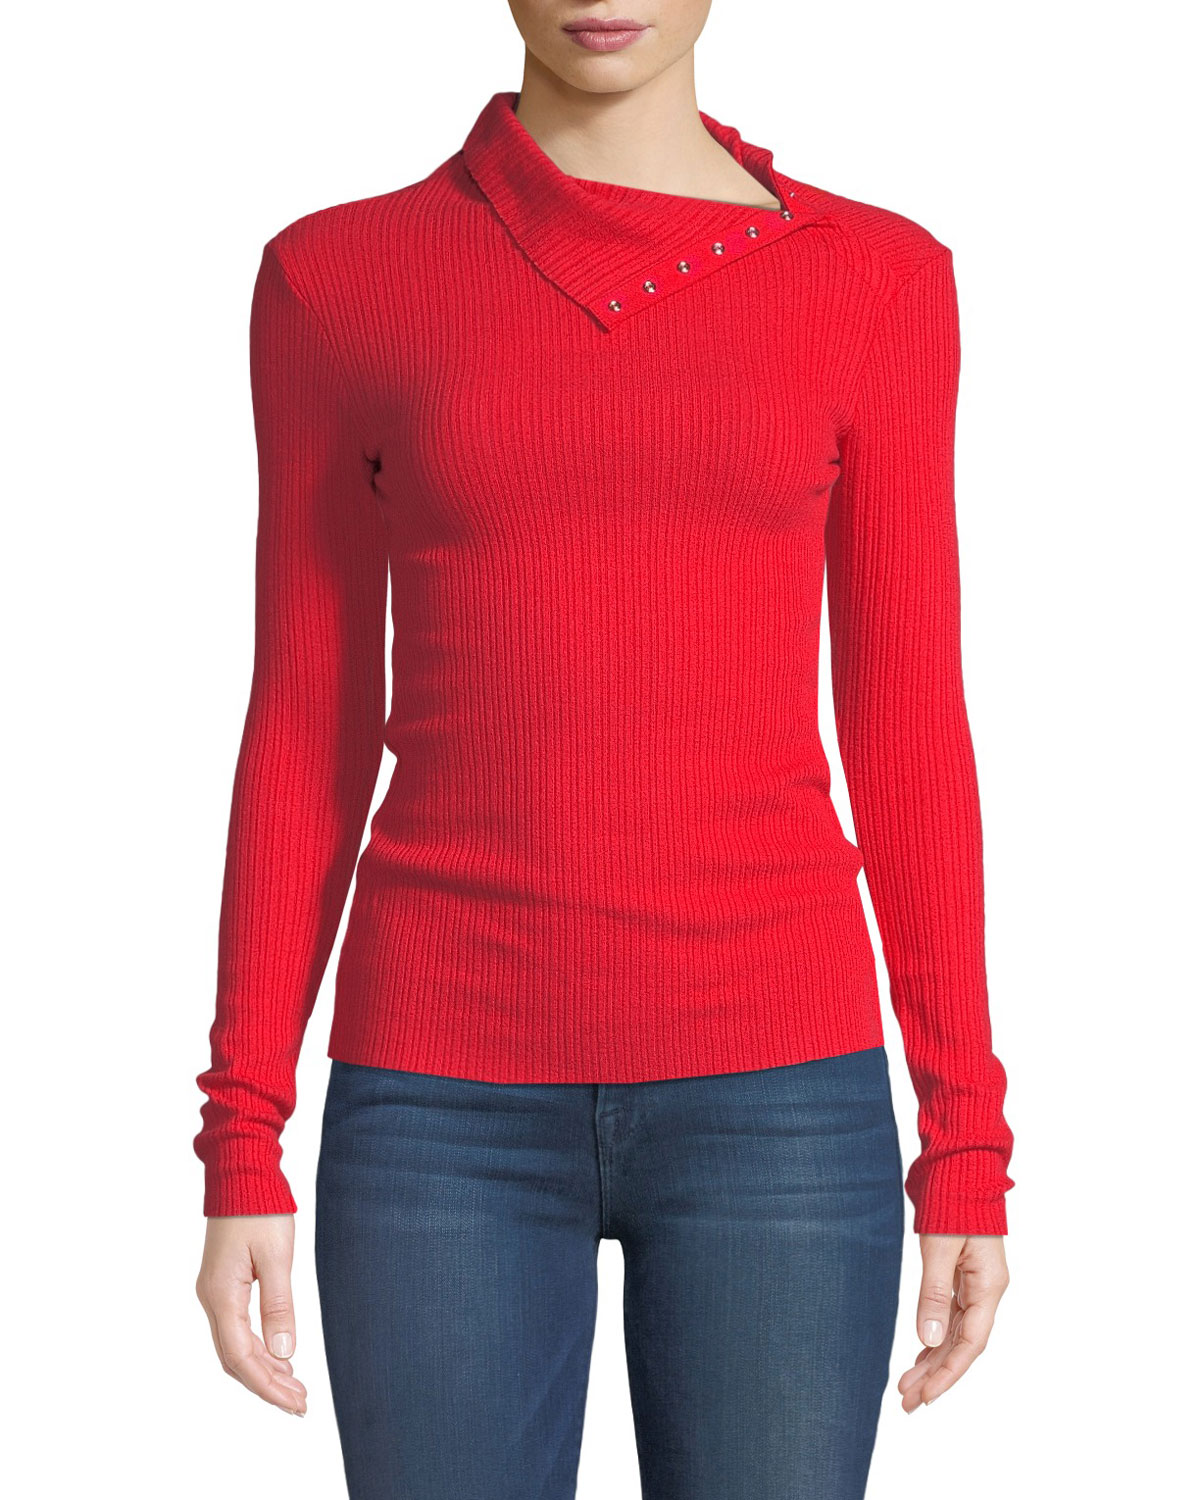 ENZA COSTA Ribbed Split-Collar Long-Sleeve Sweater in Red